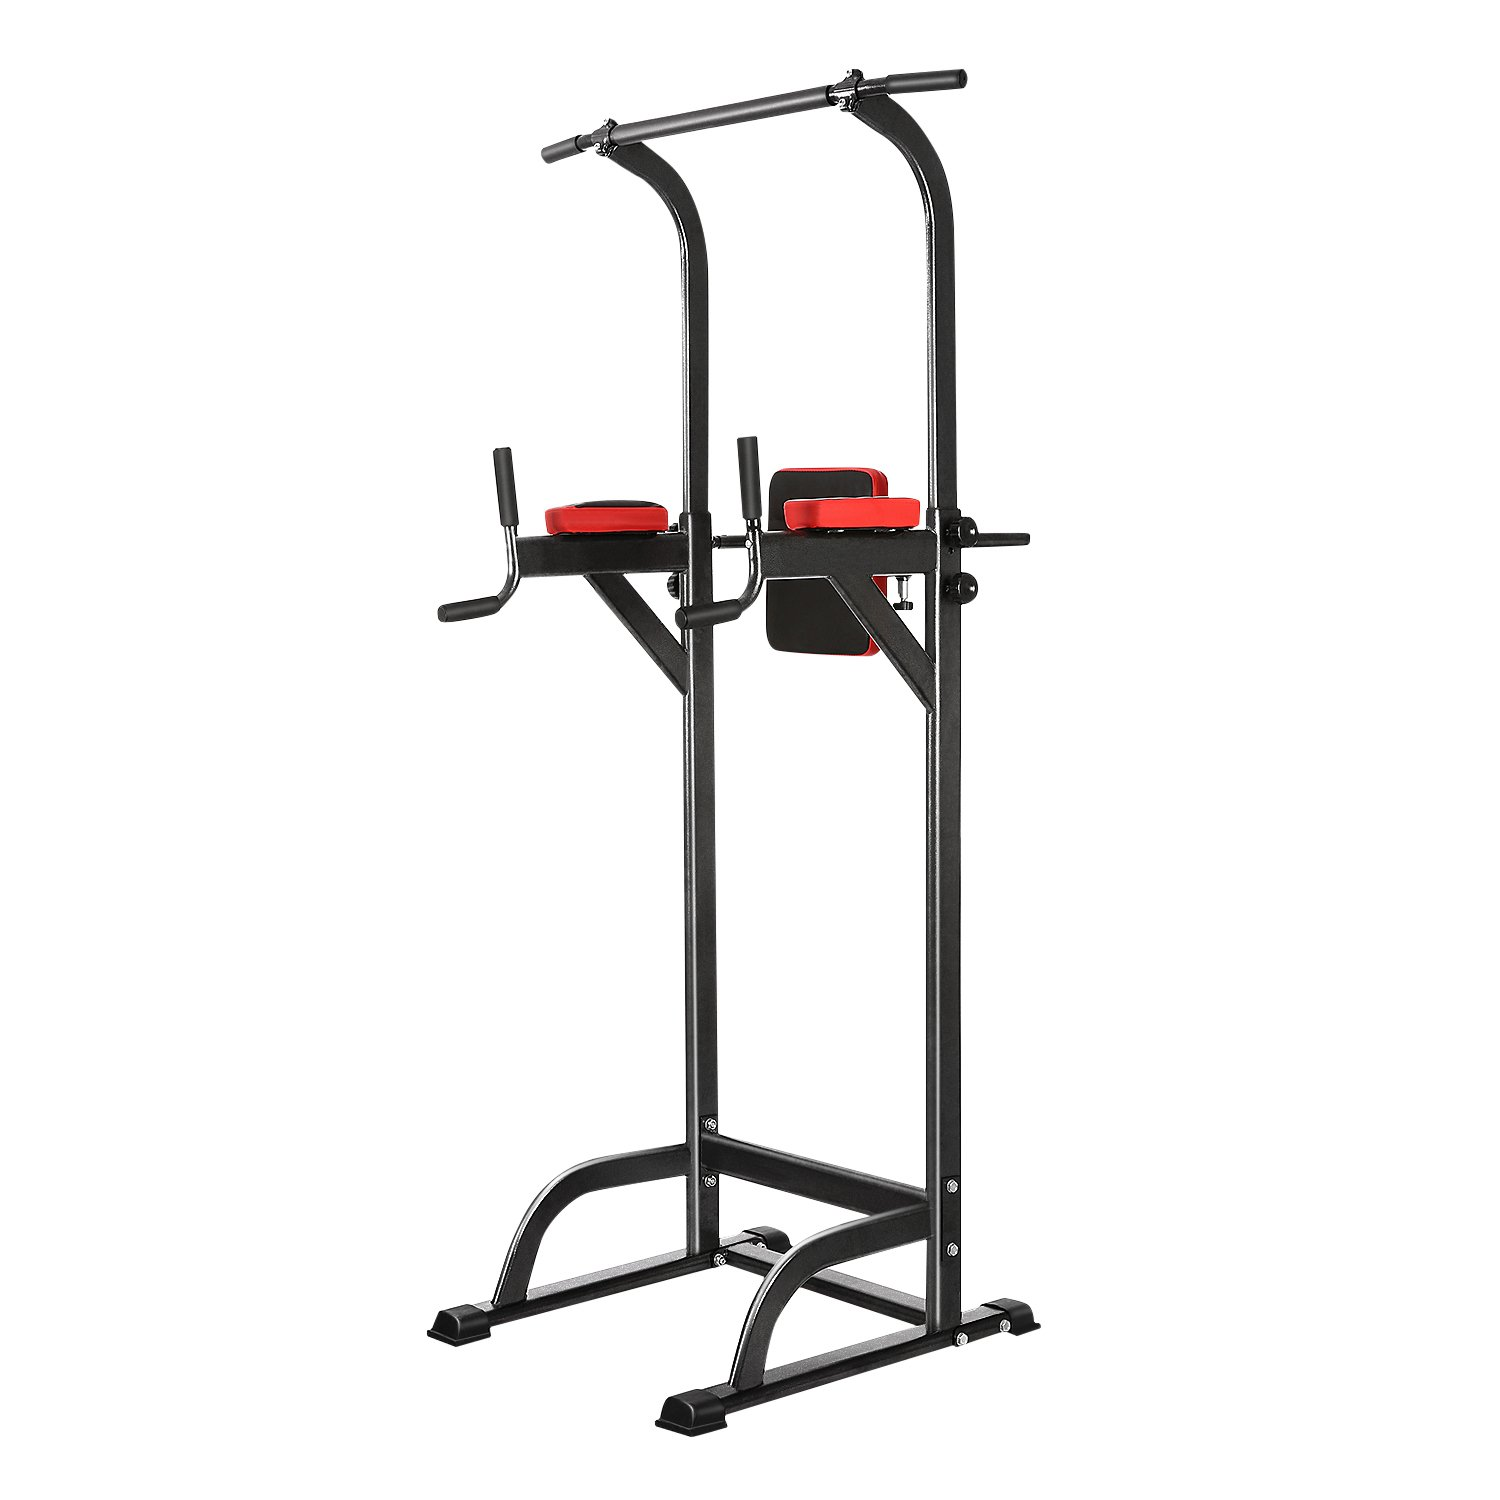 Sports Power Tower Adjustable Pull Up Bar Tower for Home Gym Strength Training Fitness Equipment [US Stock] by Flyerstoy